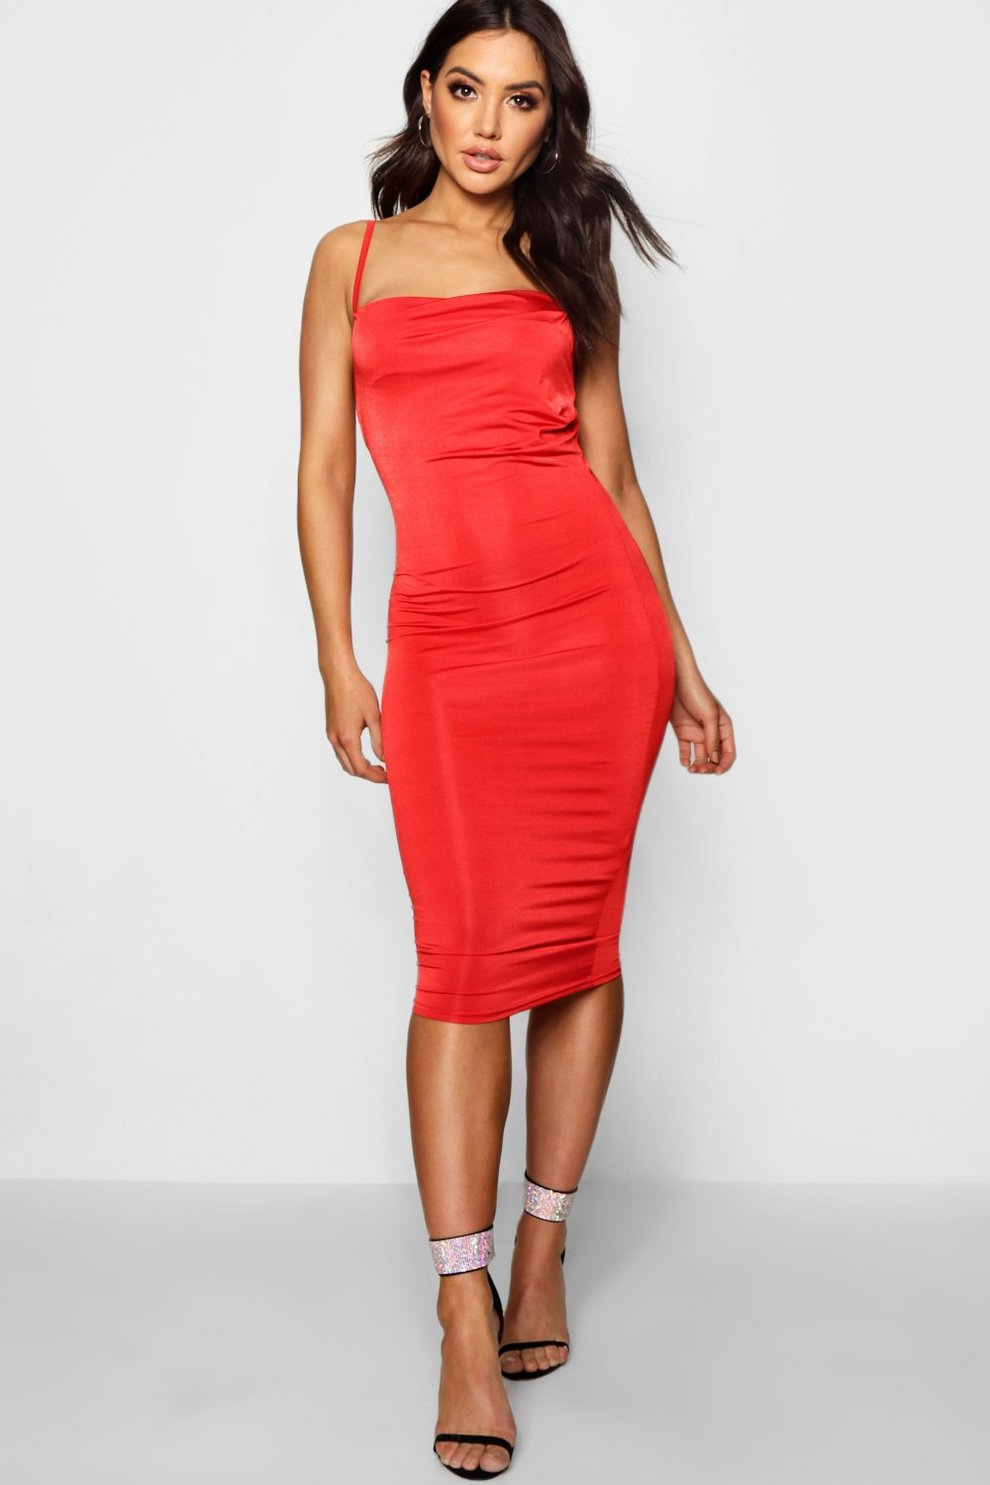 Boohoo Strappy Slinky Cowl Neck Midi Dress Sale Newest Pictures Cheap Online fv7tmXQOGf